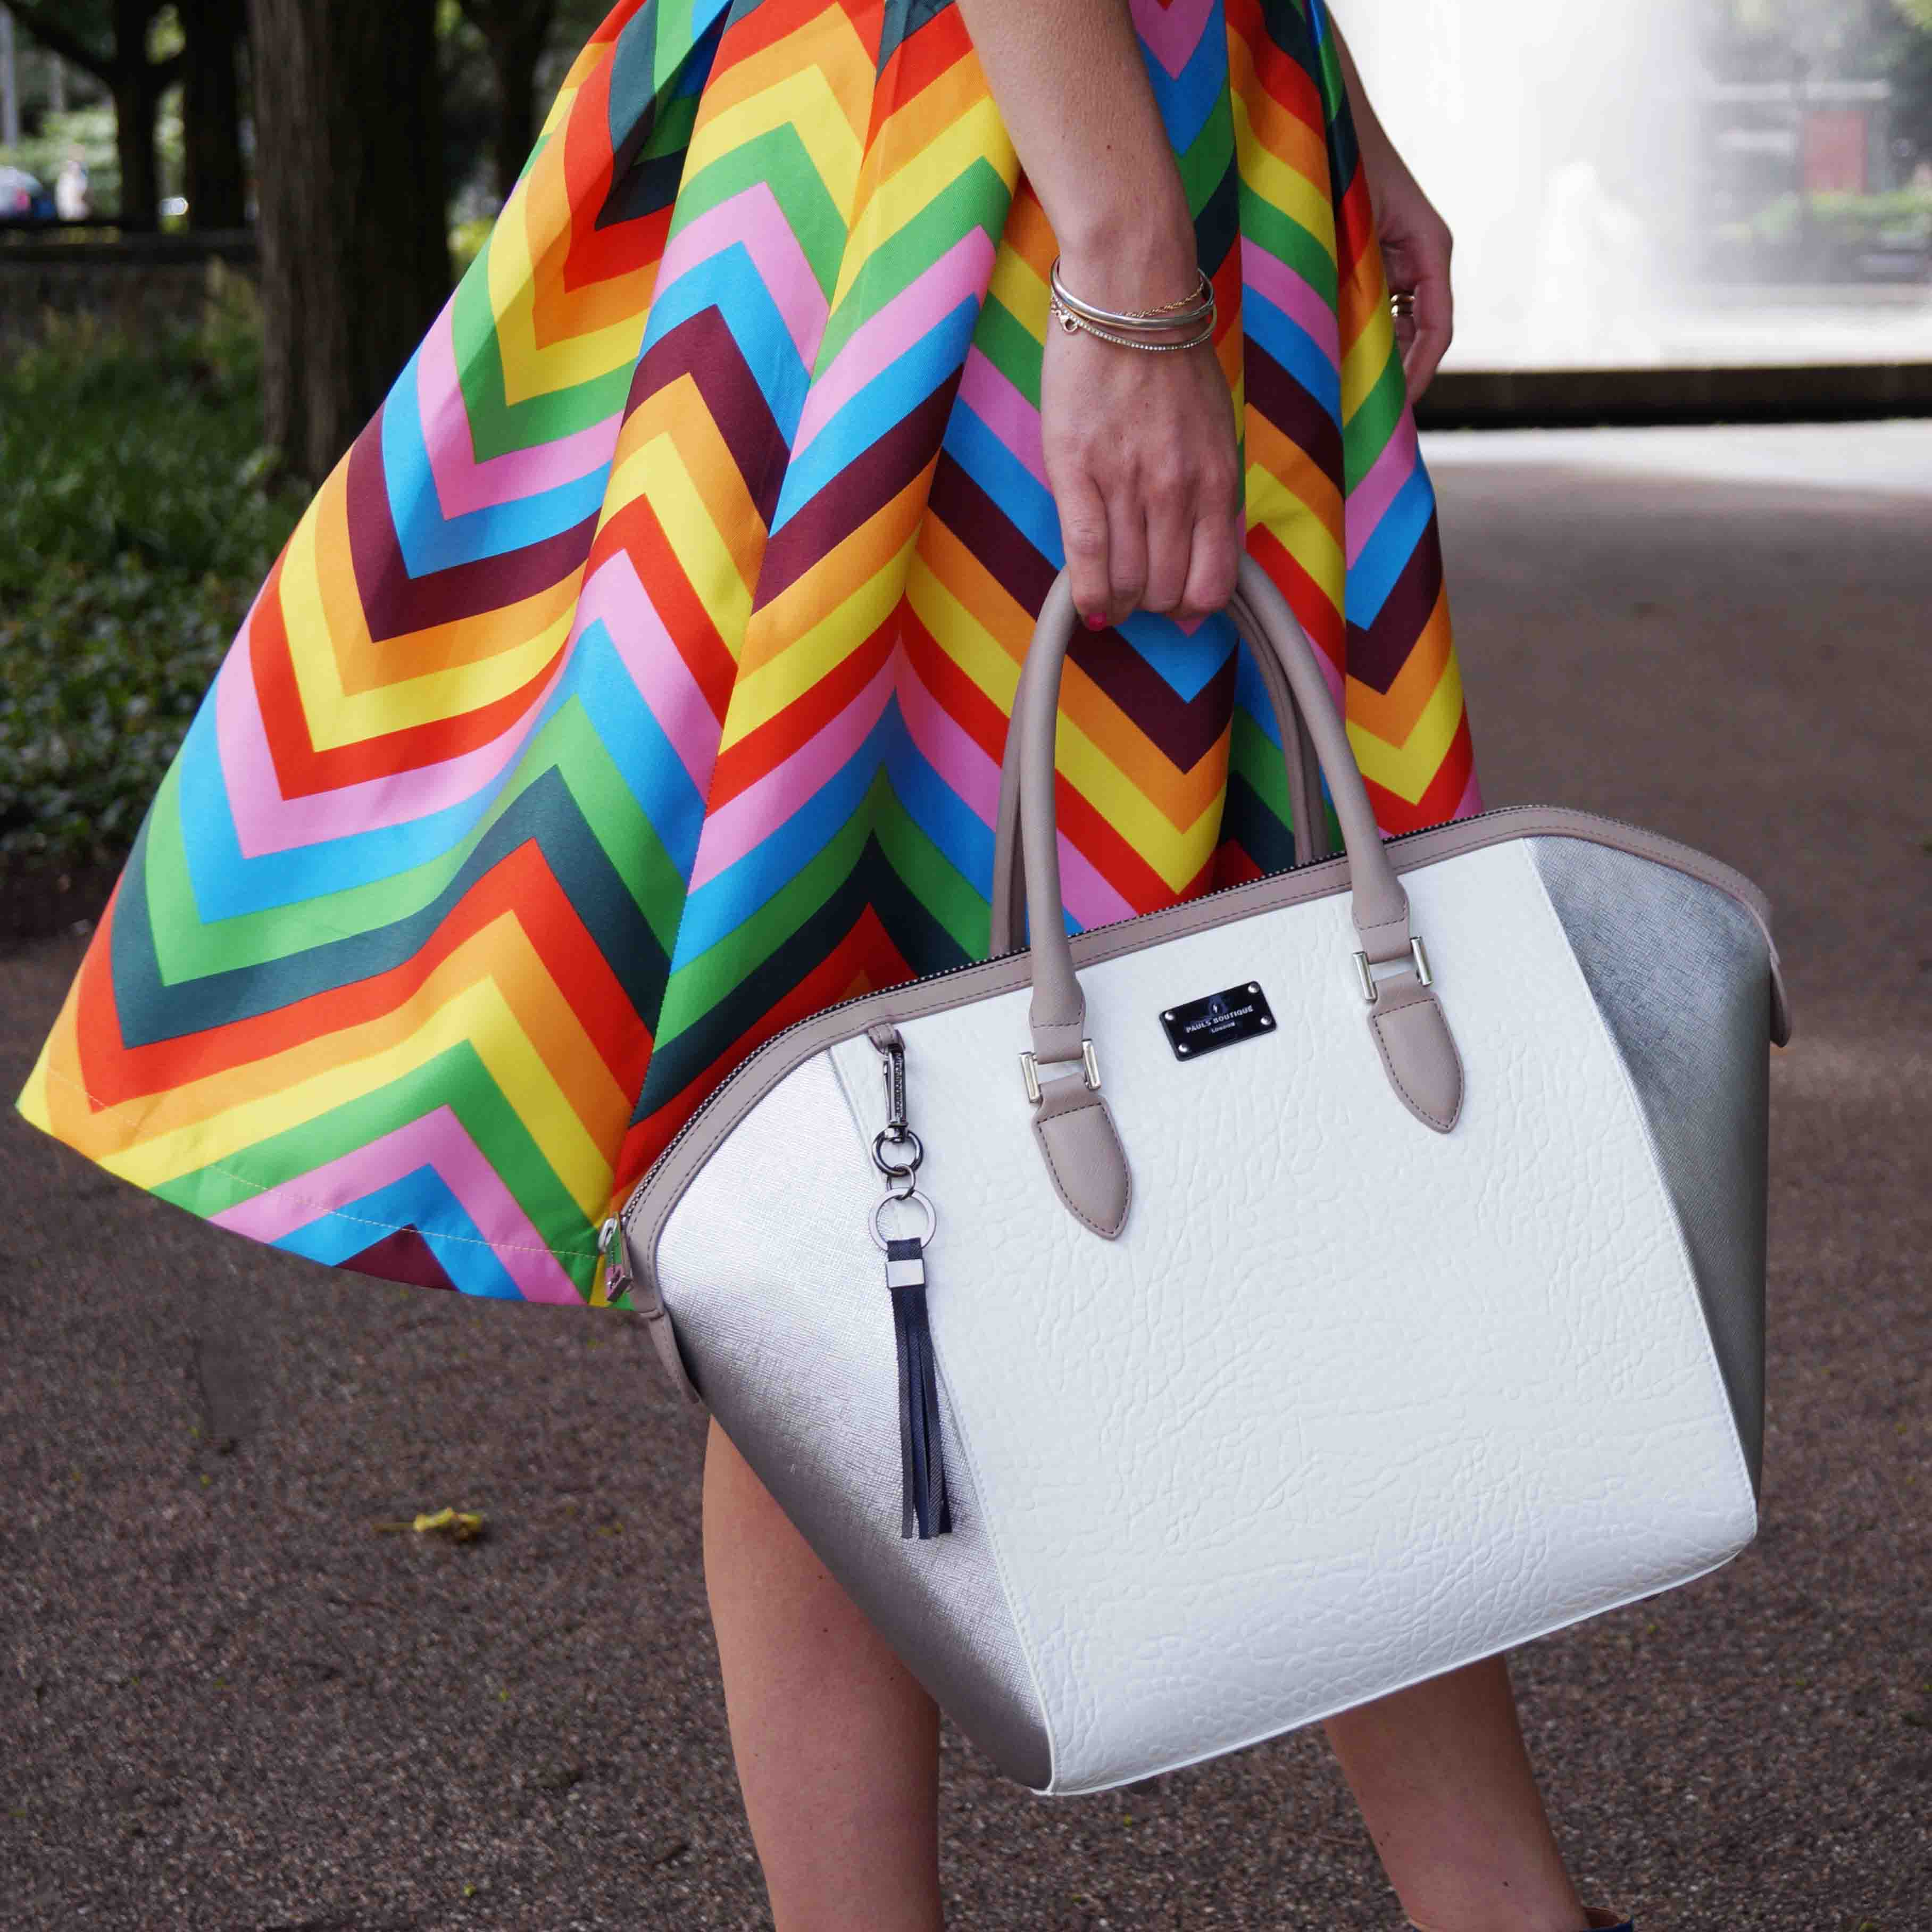 Bag at You - Fashion Blog - Paul's Boutique bags - Tassen - Colorful skirt and white bag